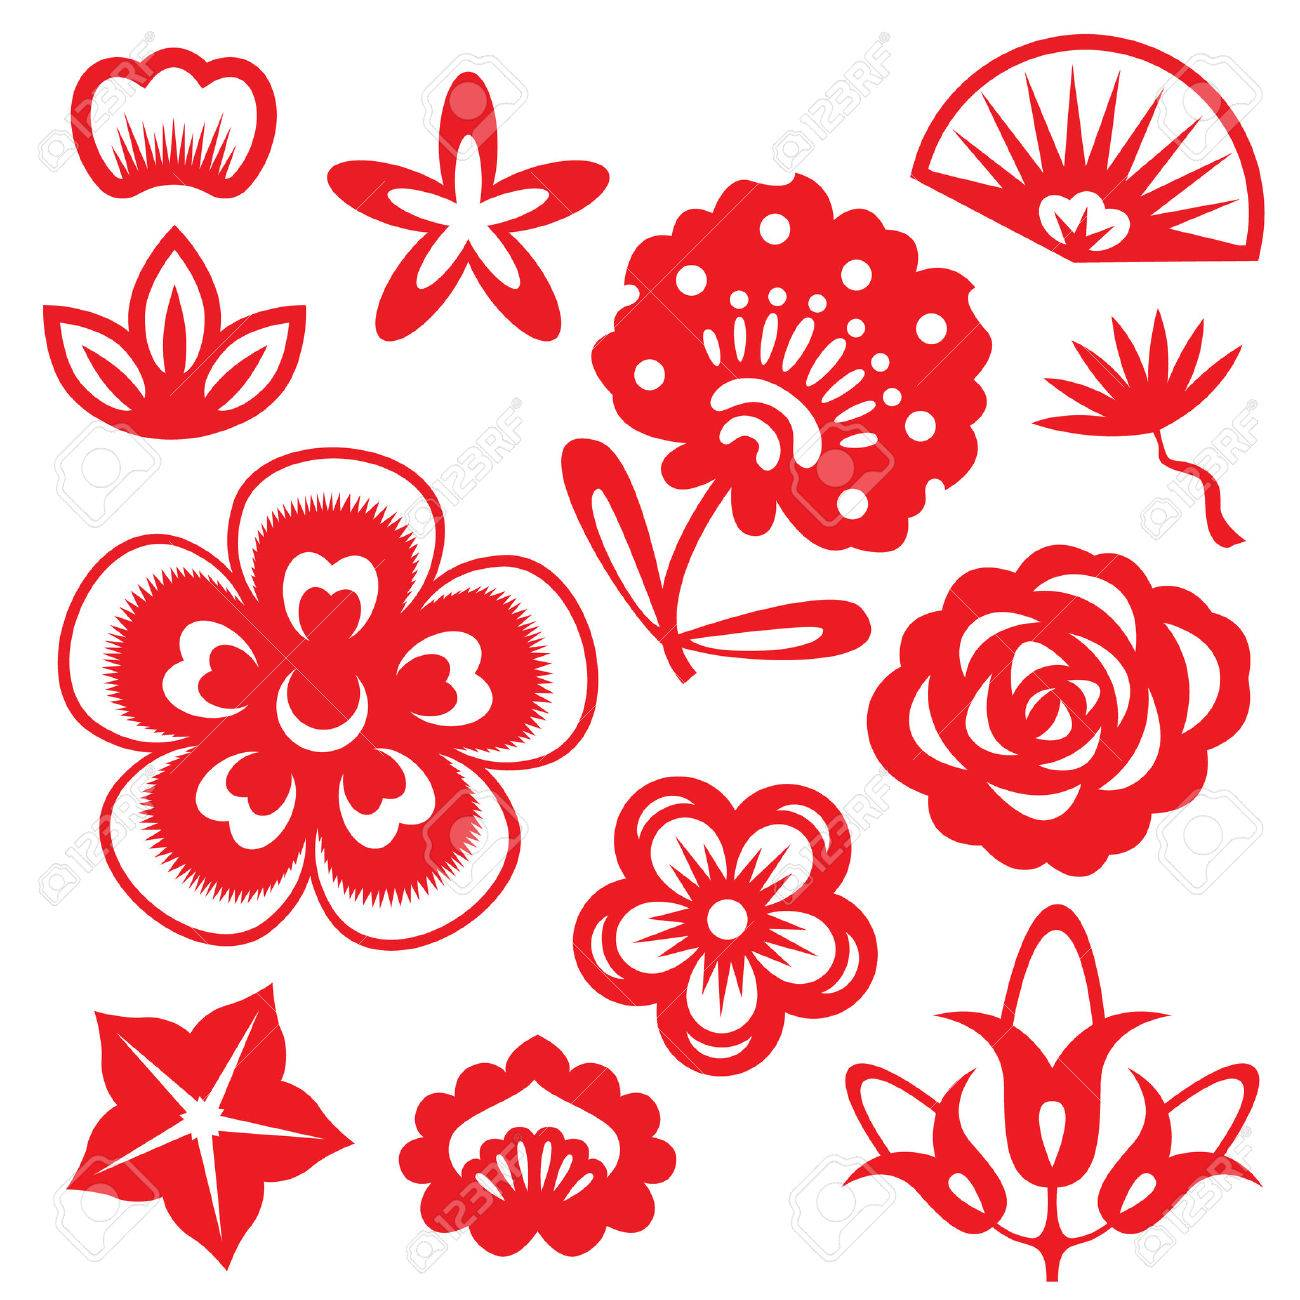 Chinese paper cutting flowers image collections fresh lotus flowers chinese paper cut flower basket stock image image of facebook mightylinksfo